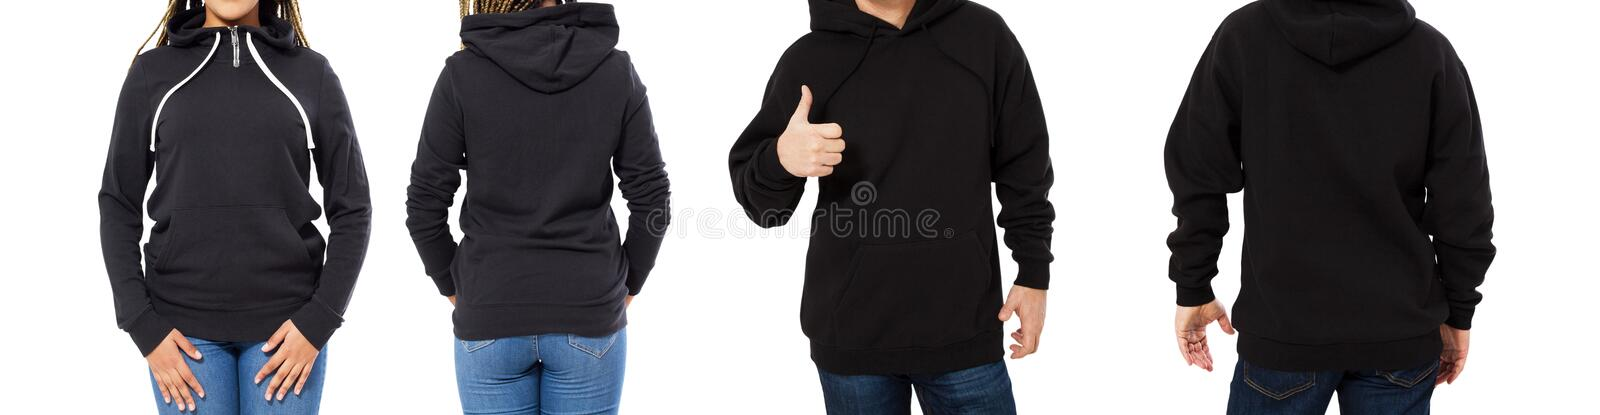 Female and male hoodie mock up isolated - hood set front and back view, girl and man in empty black pullover royalty free stock photos